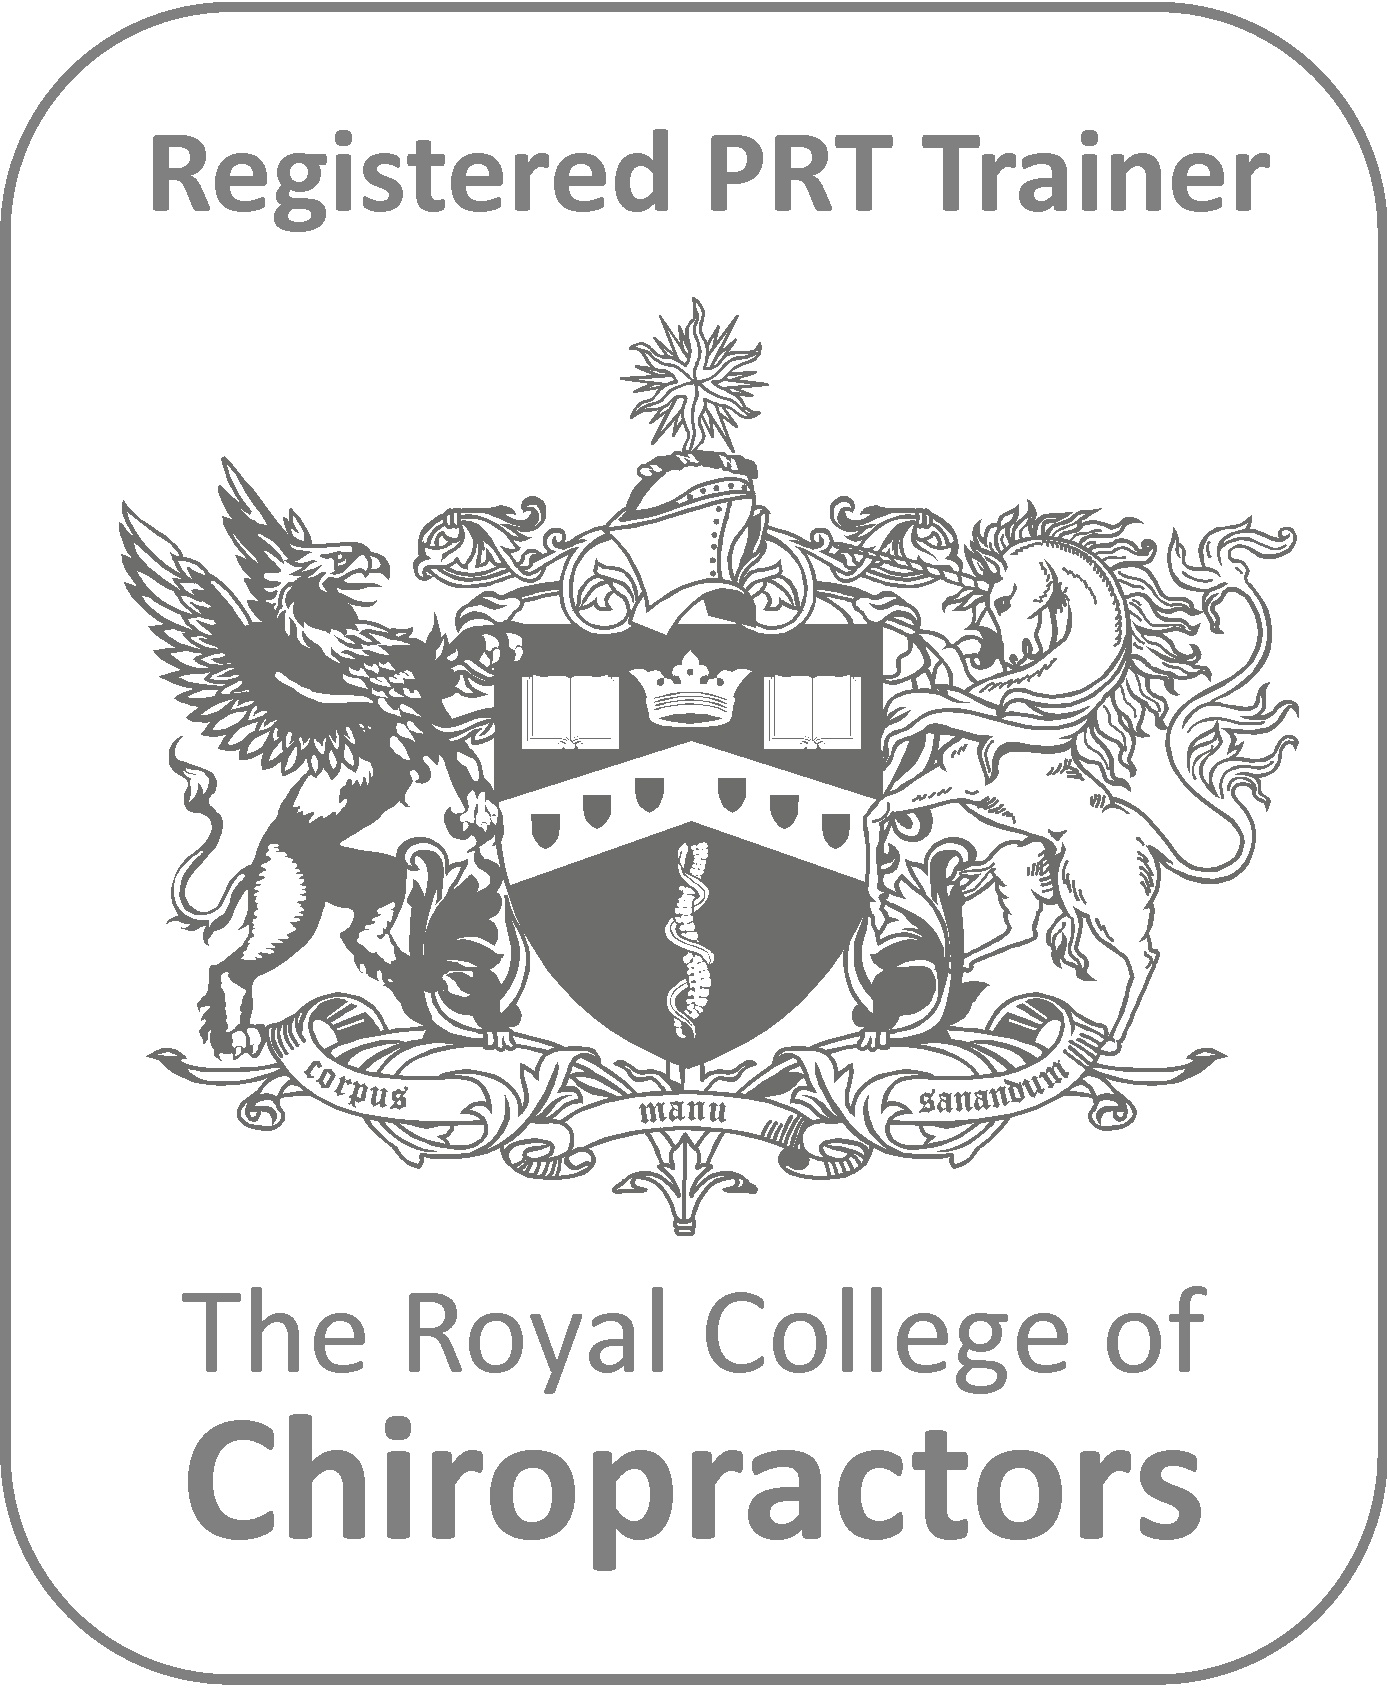 RCC Royal College of Chiropractors PRT post registration training logo badge